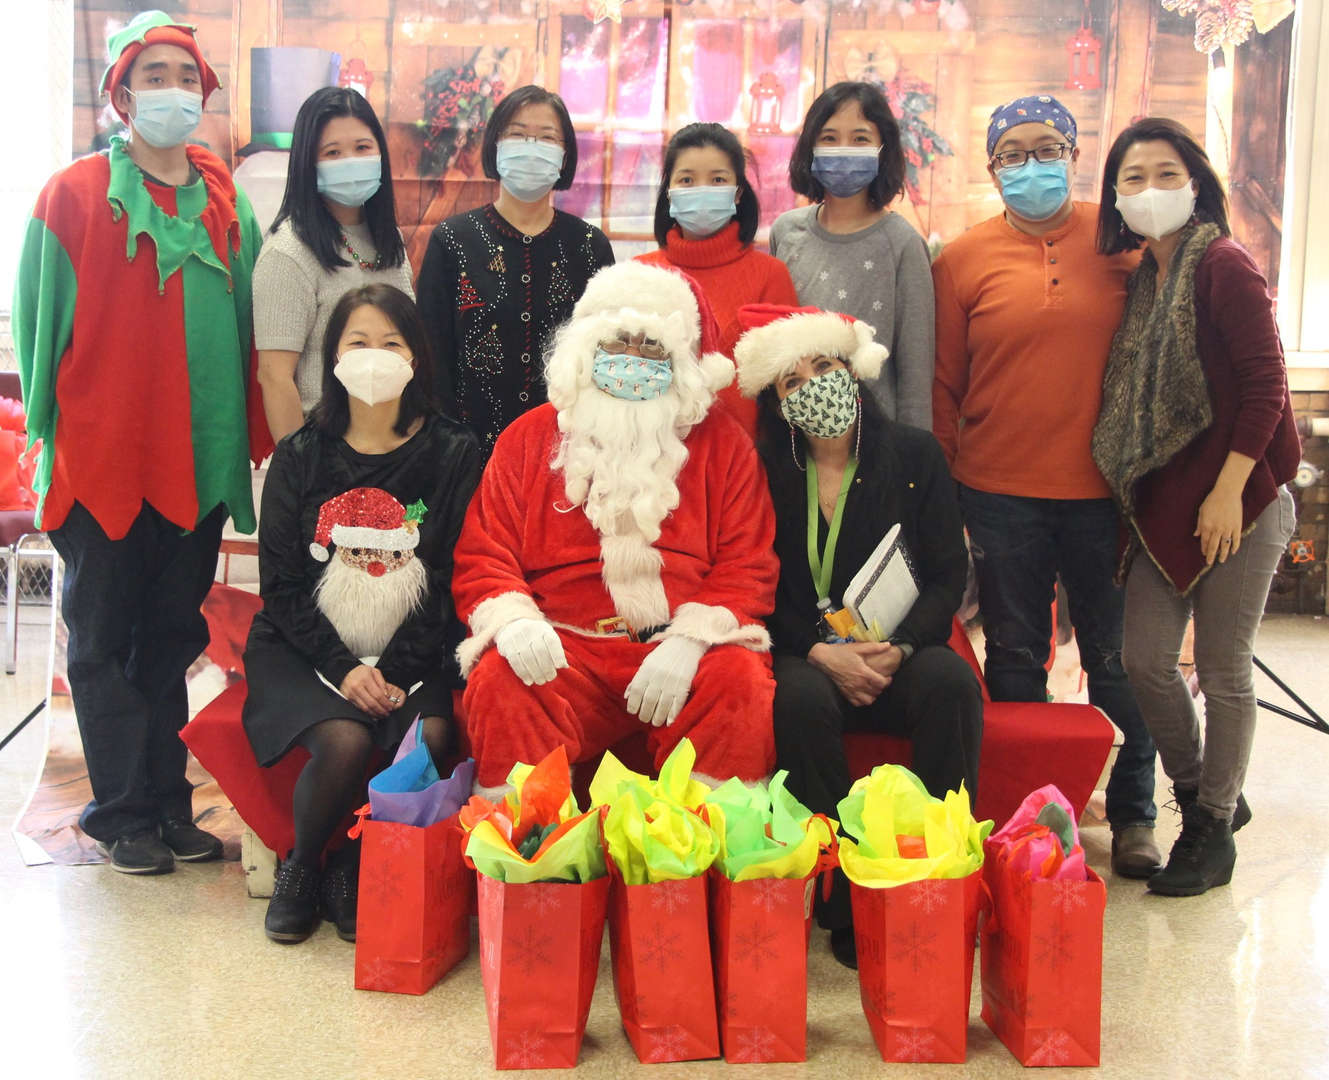 Support staff with Santa